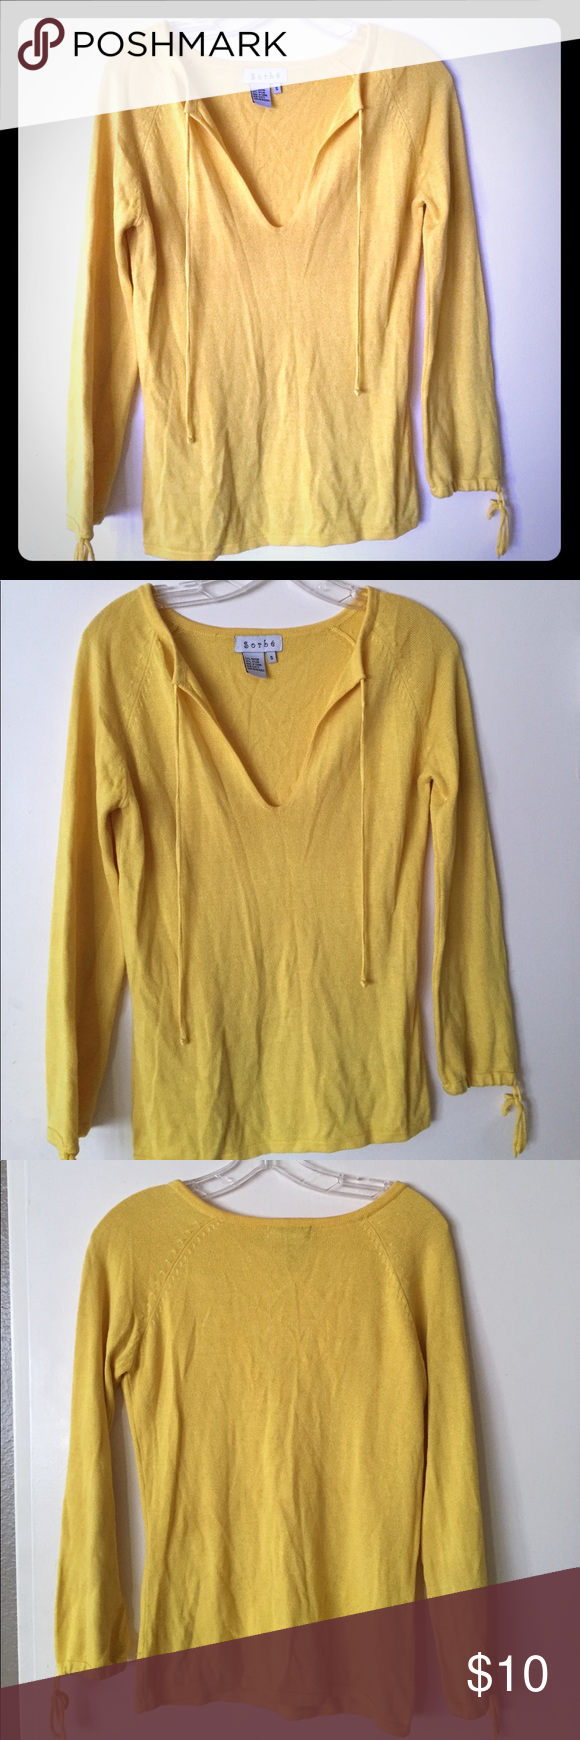 Cute! Yellow sweater/shirt